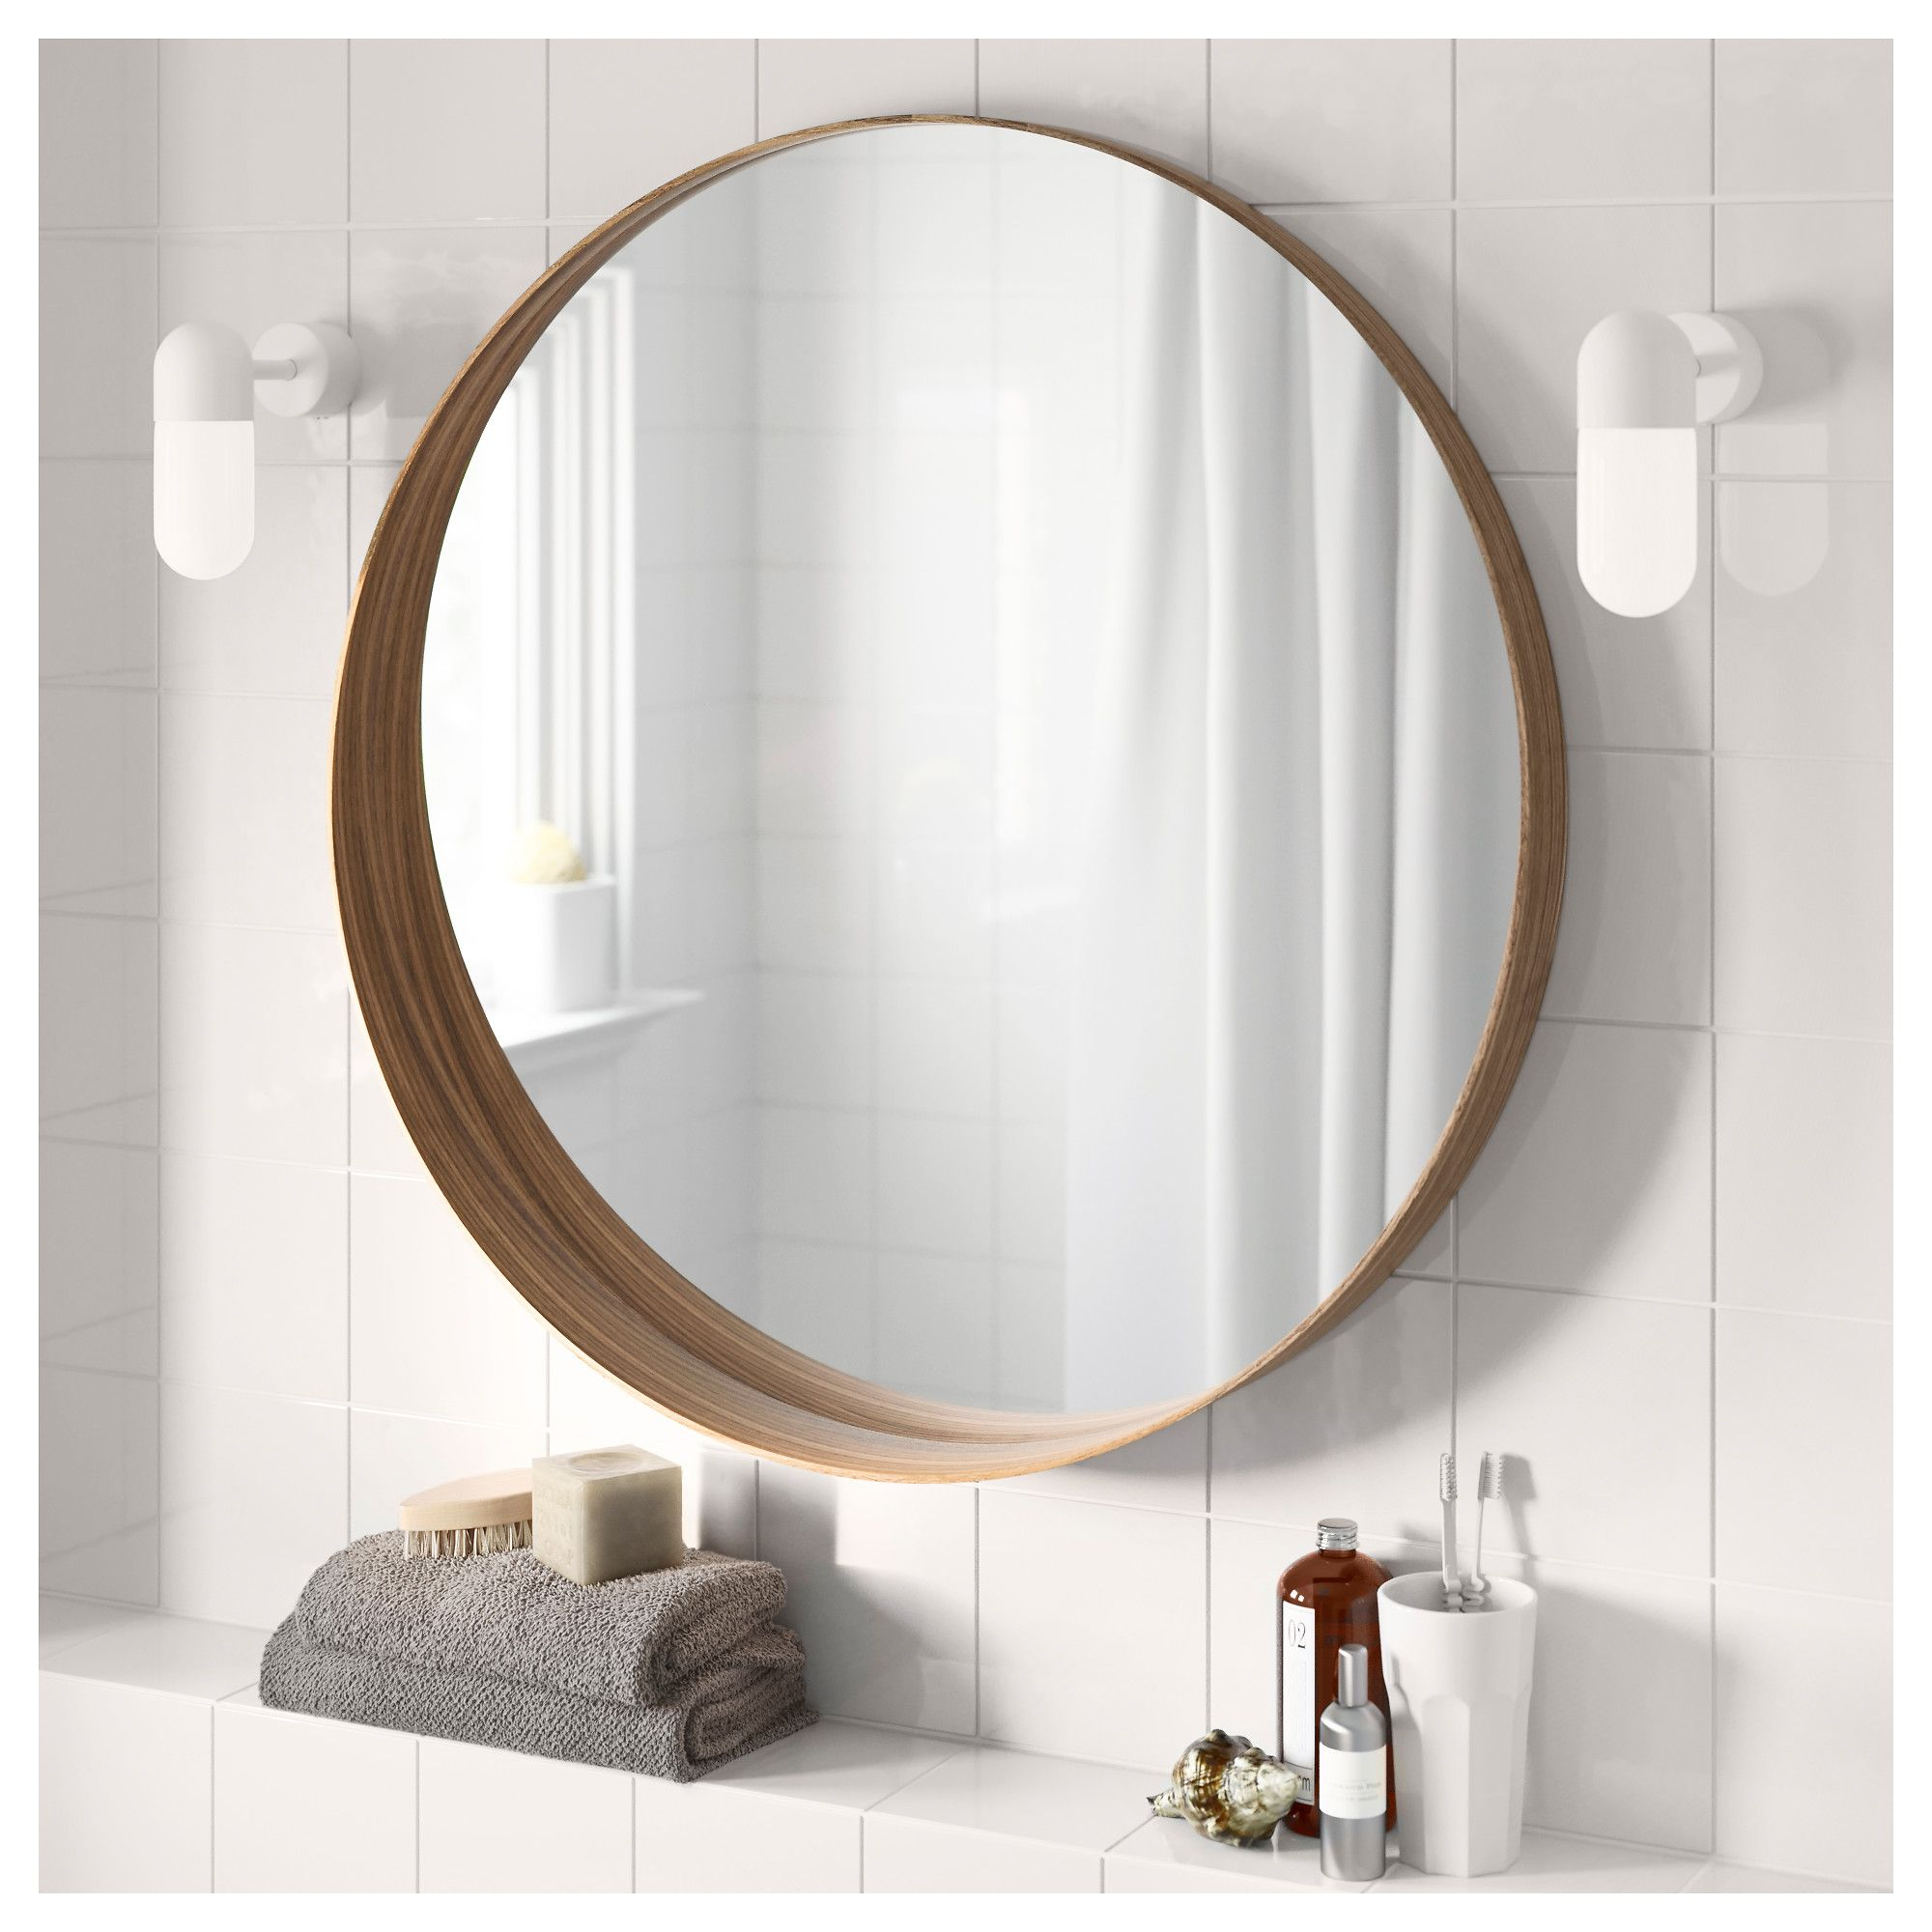 "Safety Mirrors For Bathrooms: Image Result For Walnut 3"" Frame Mirror Bathroom"